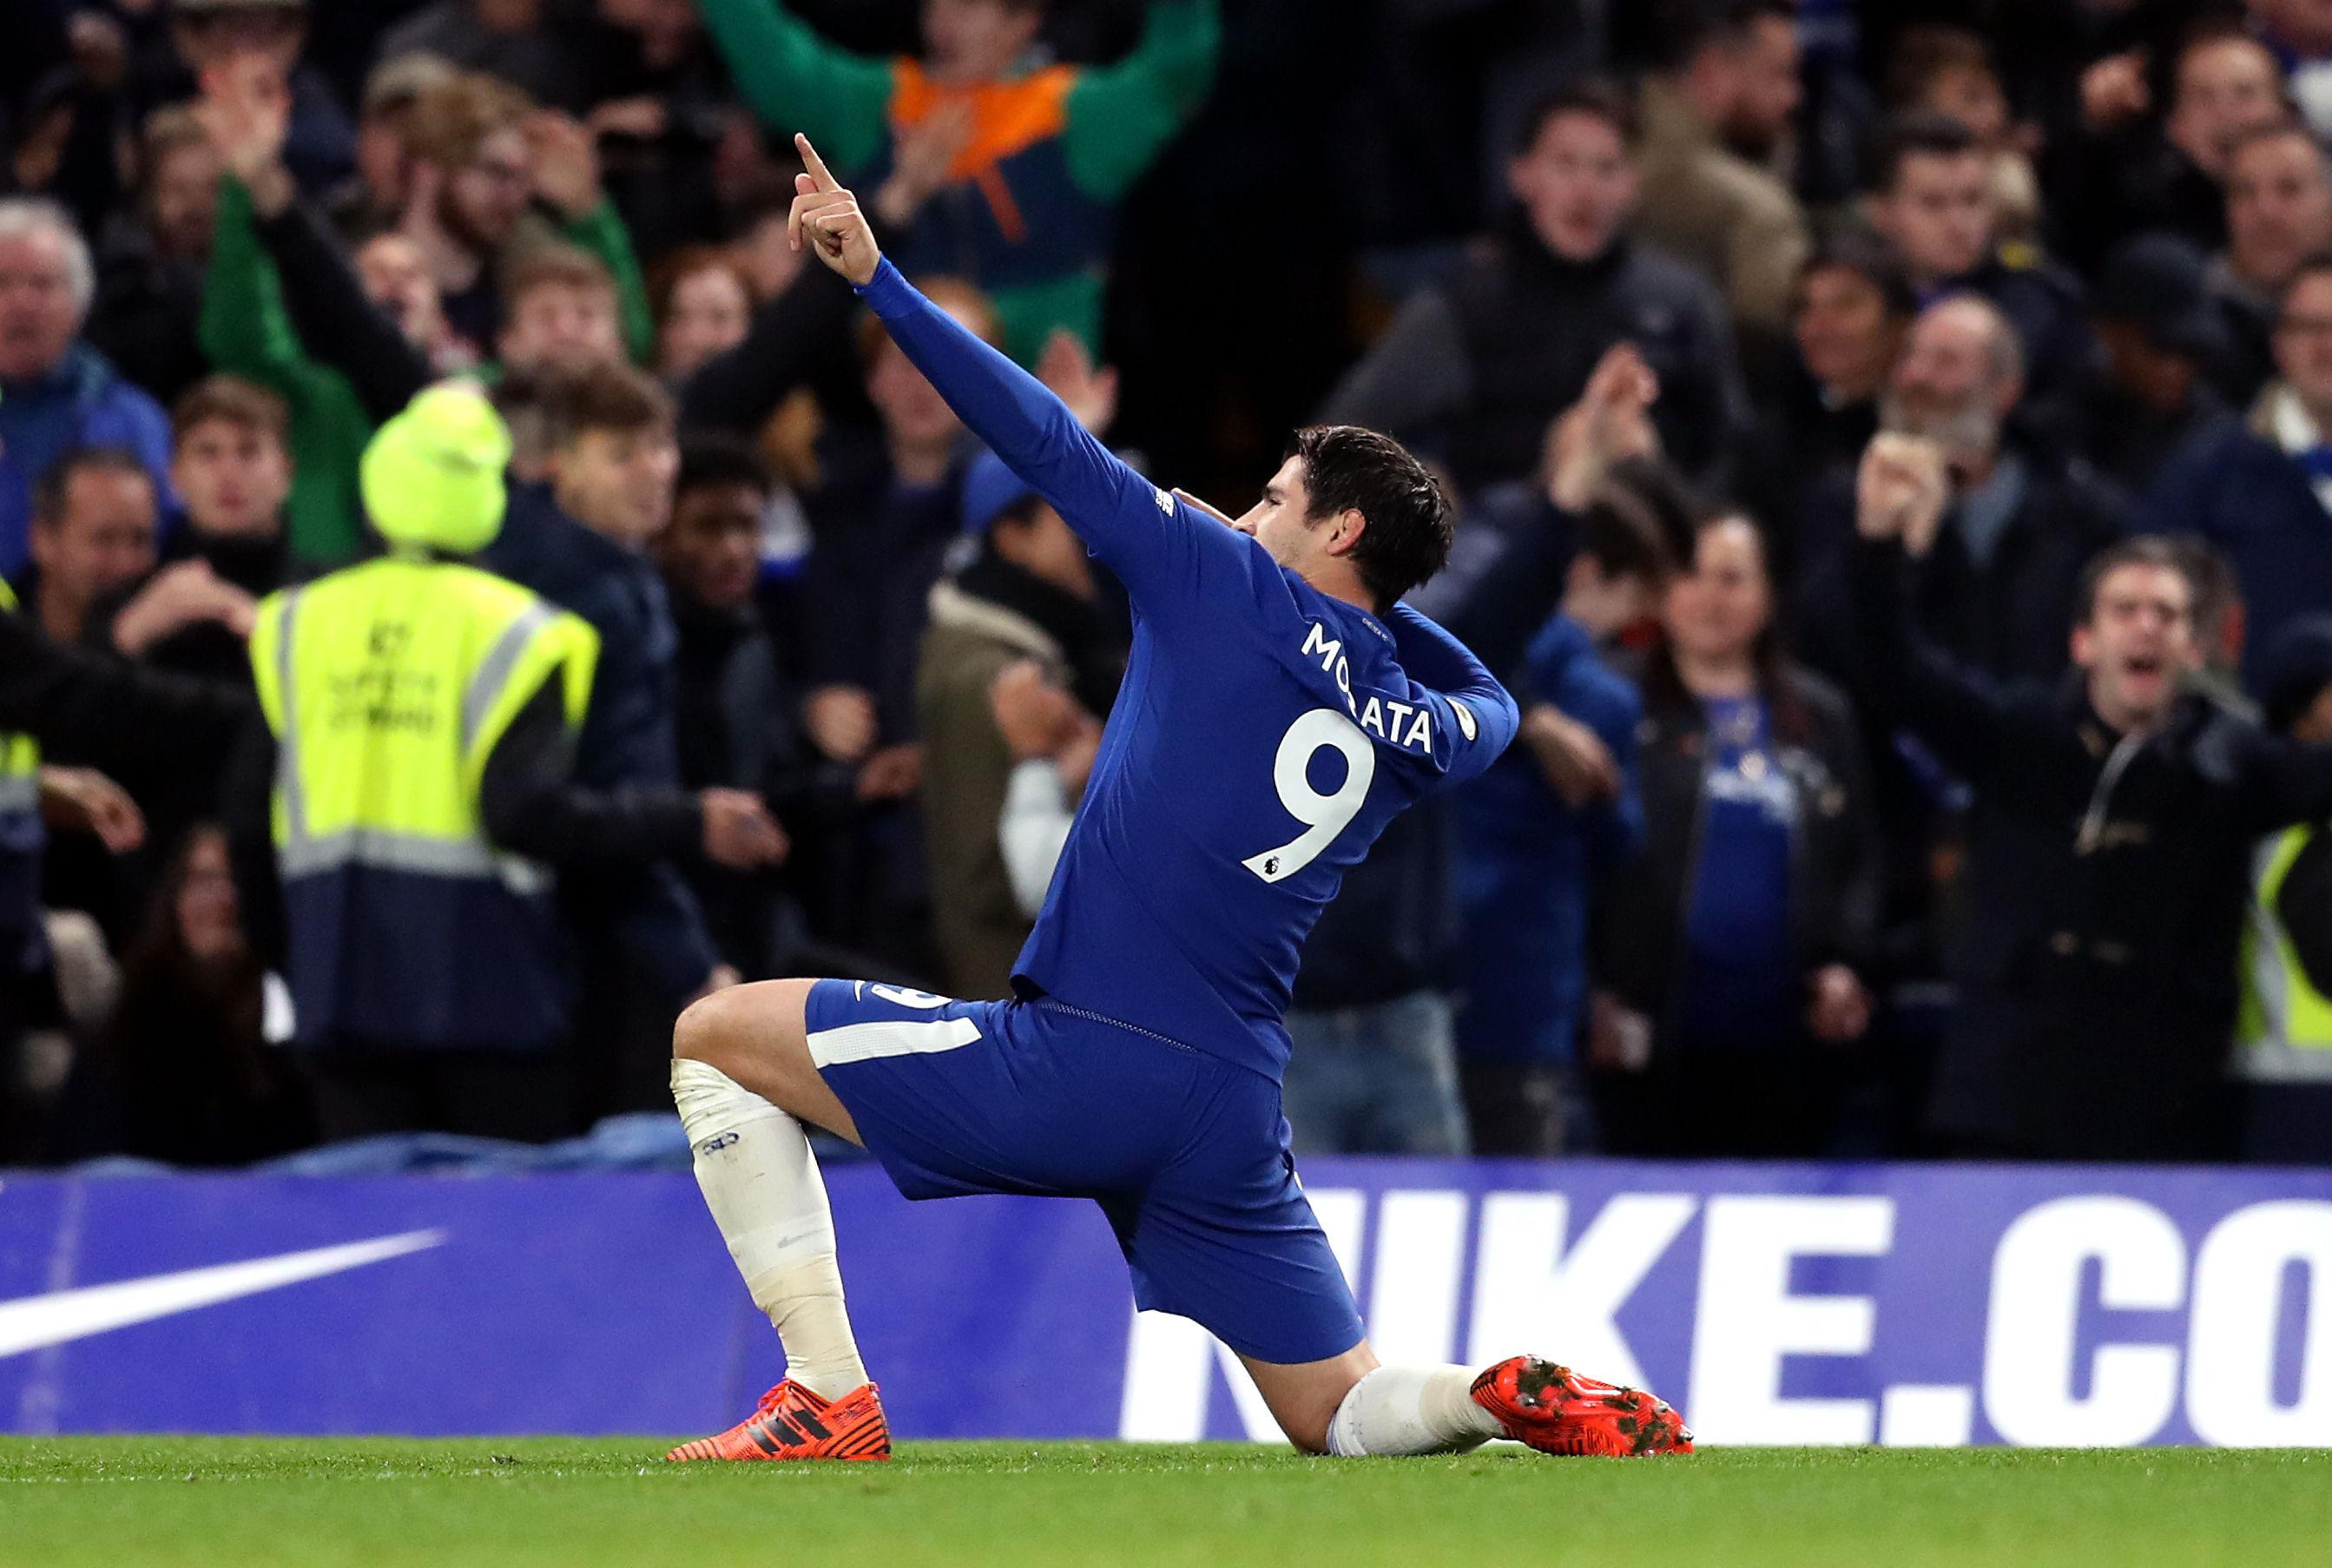 Morata channelling his inner Usain Bolt